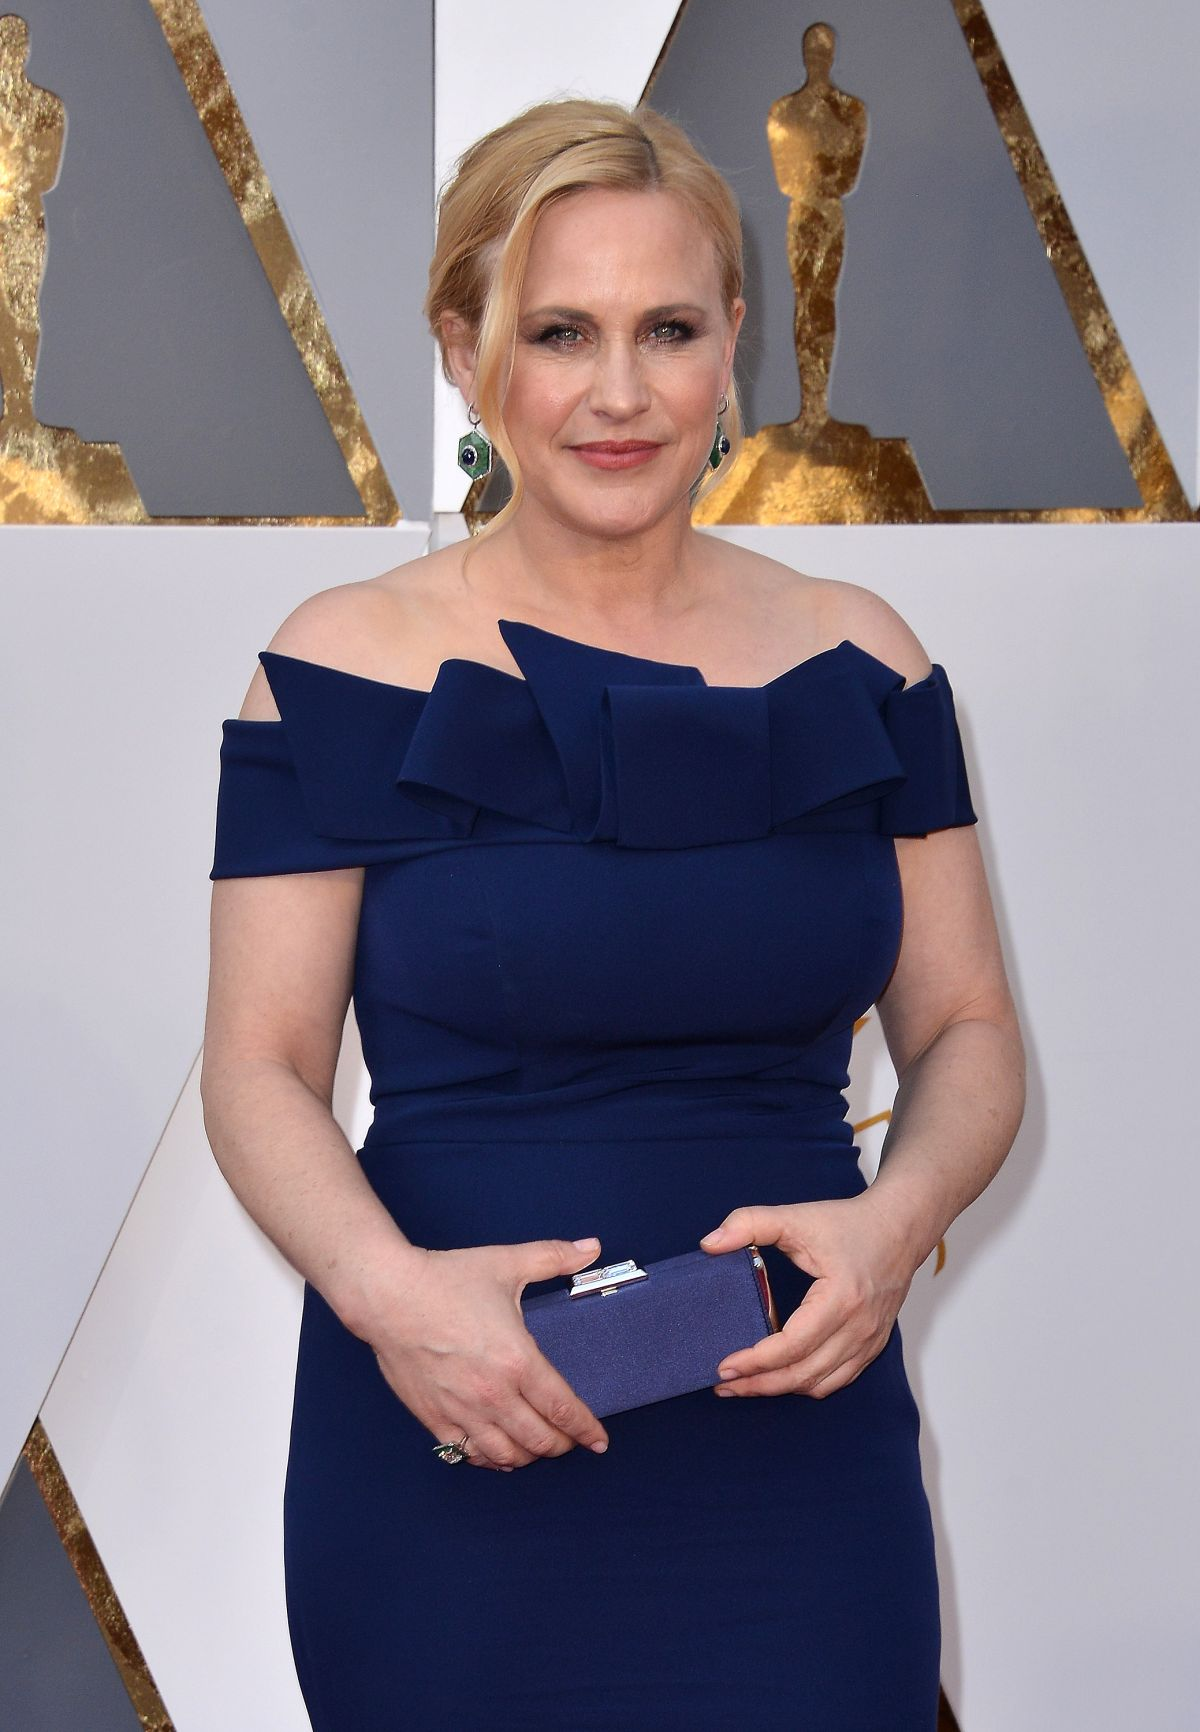 PATRICIA ARQUETTE at 88th Annual Academy Awards in Hollywood 02/28/2016